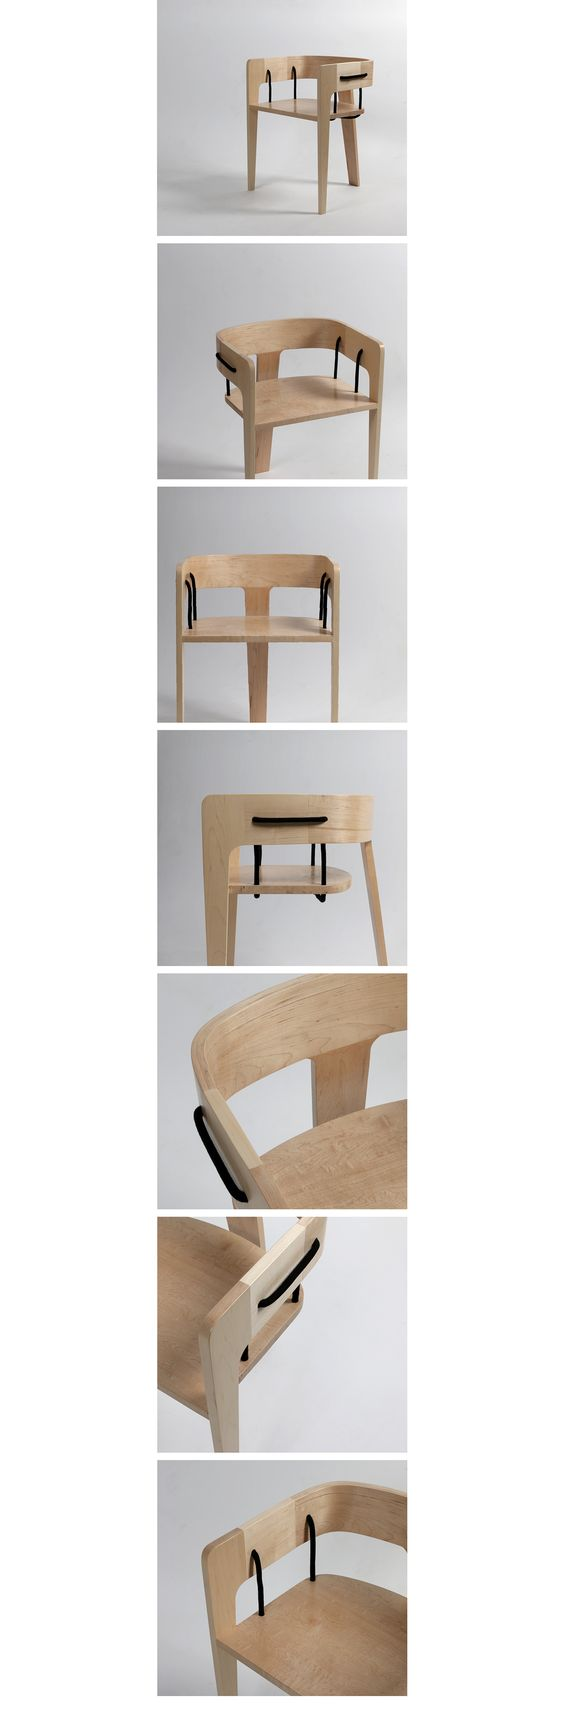 The chair motivated by a swing